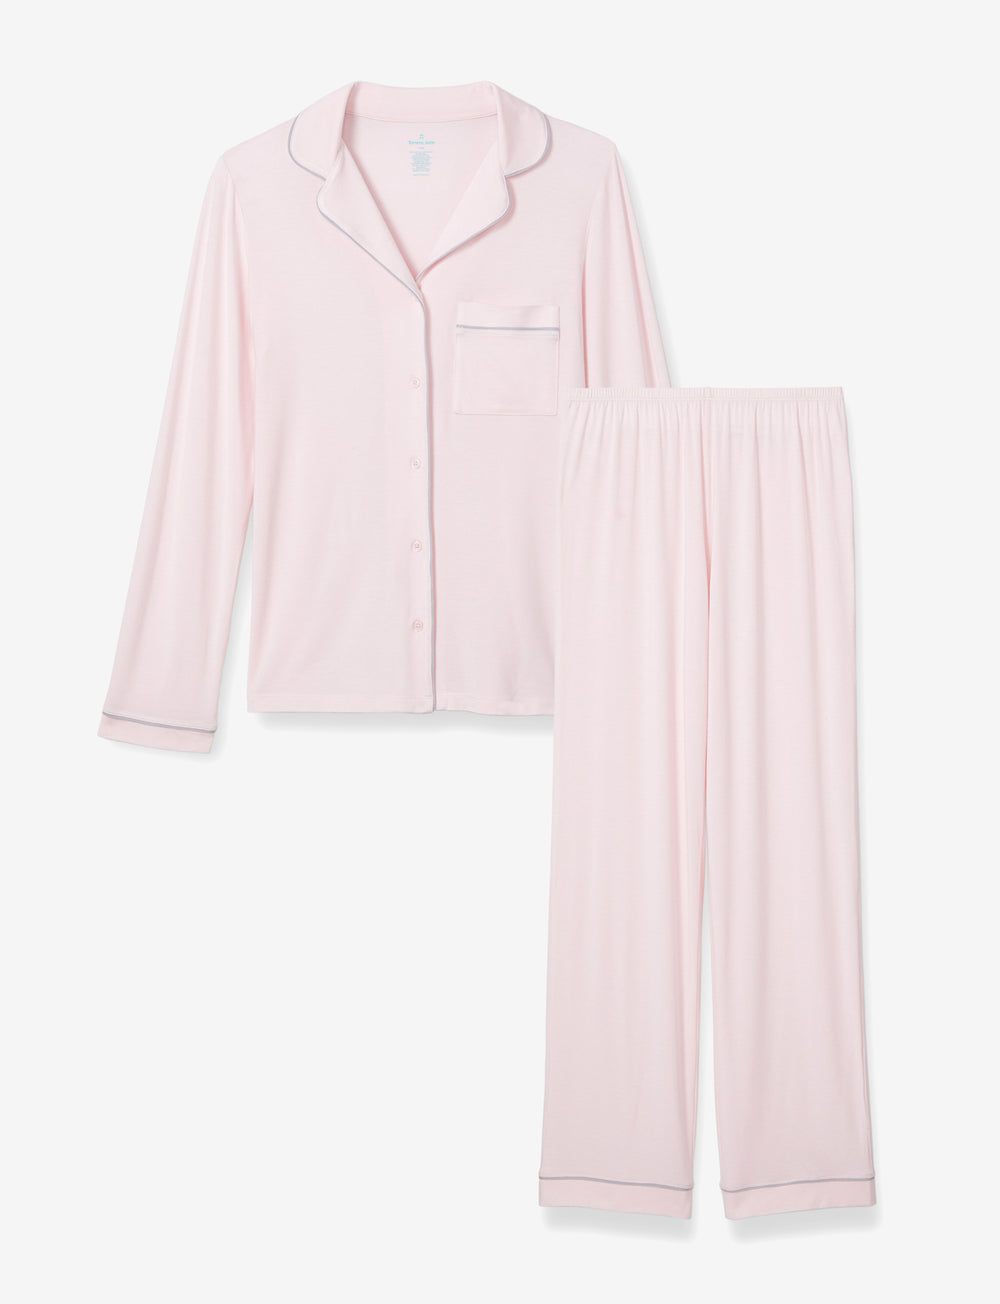 Mother's Day PJ Set Blush Long Sleeve Top & Pant Details Image